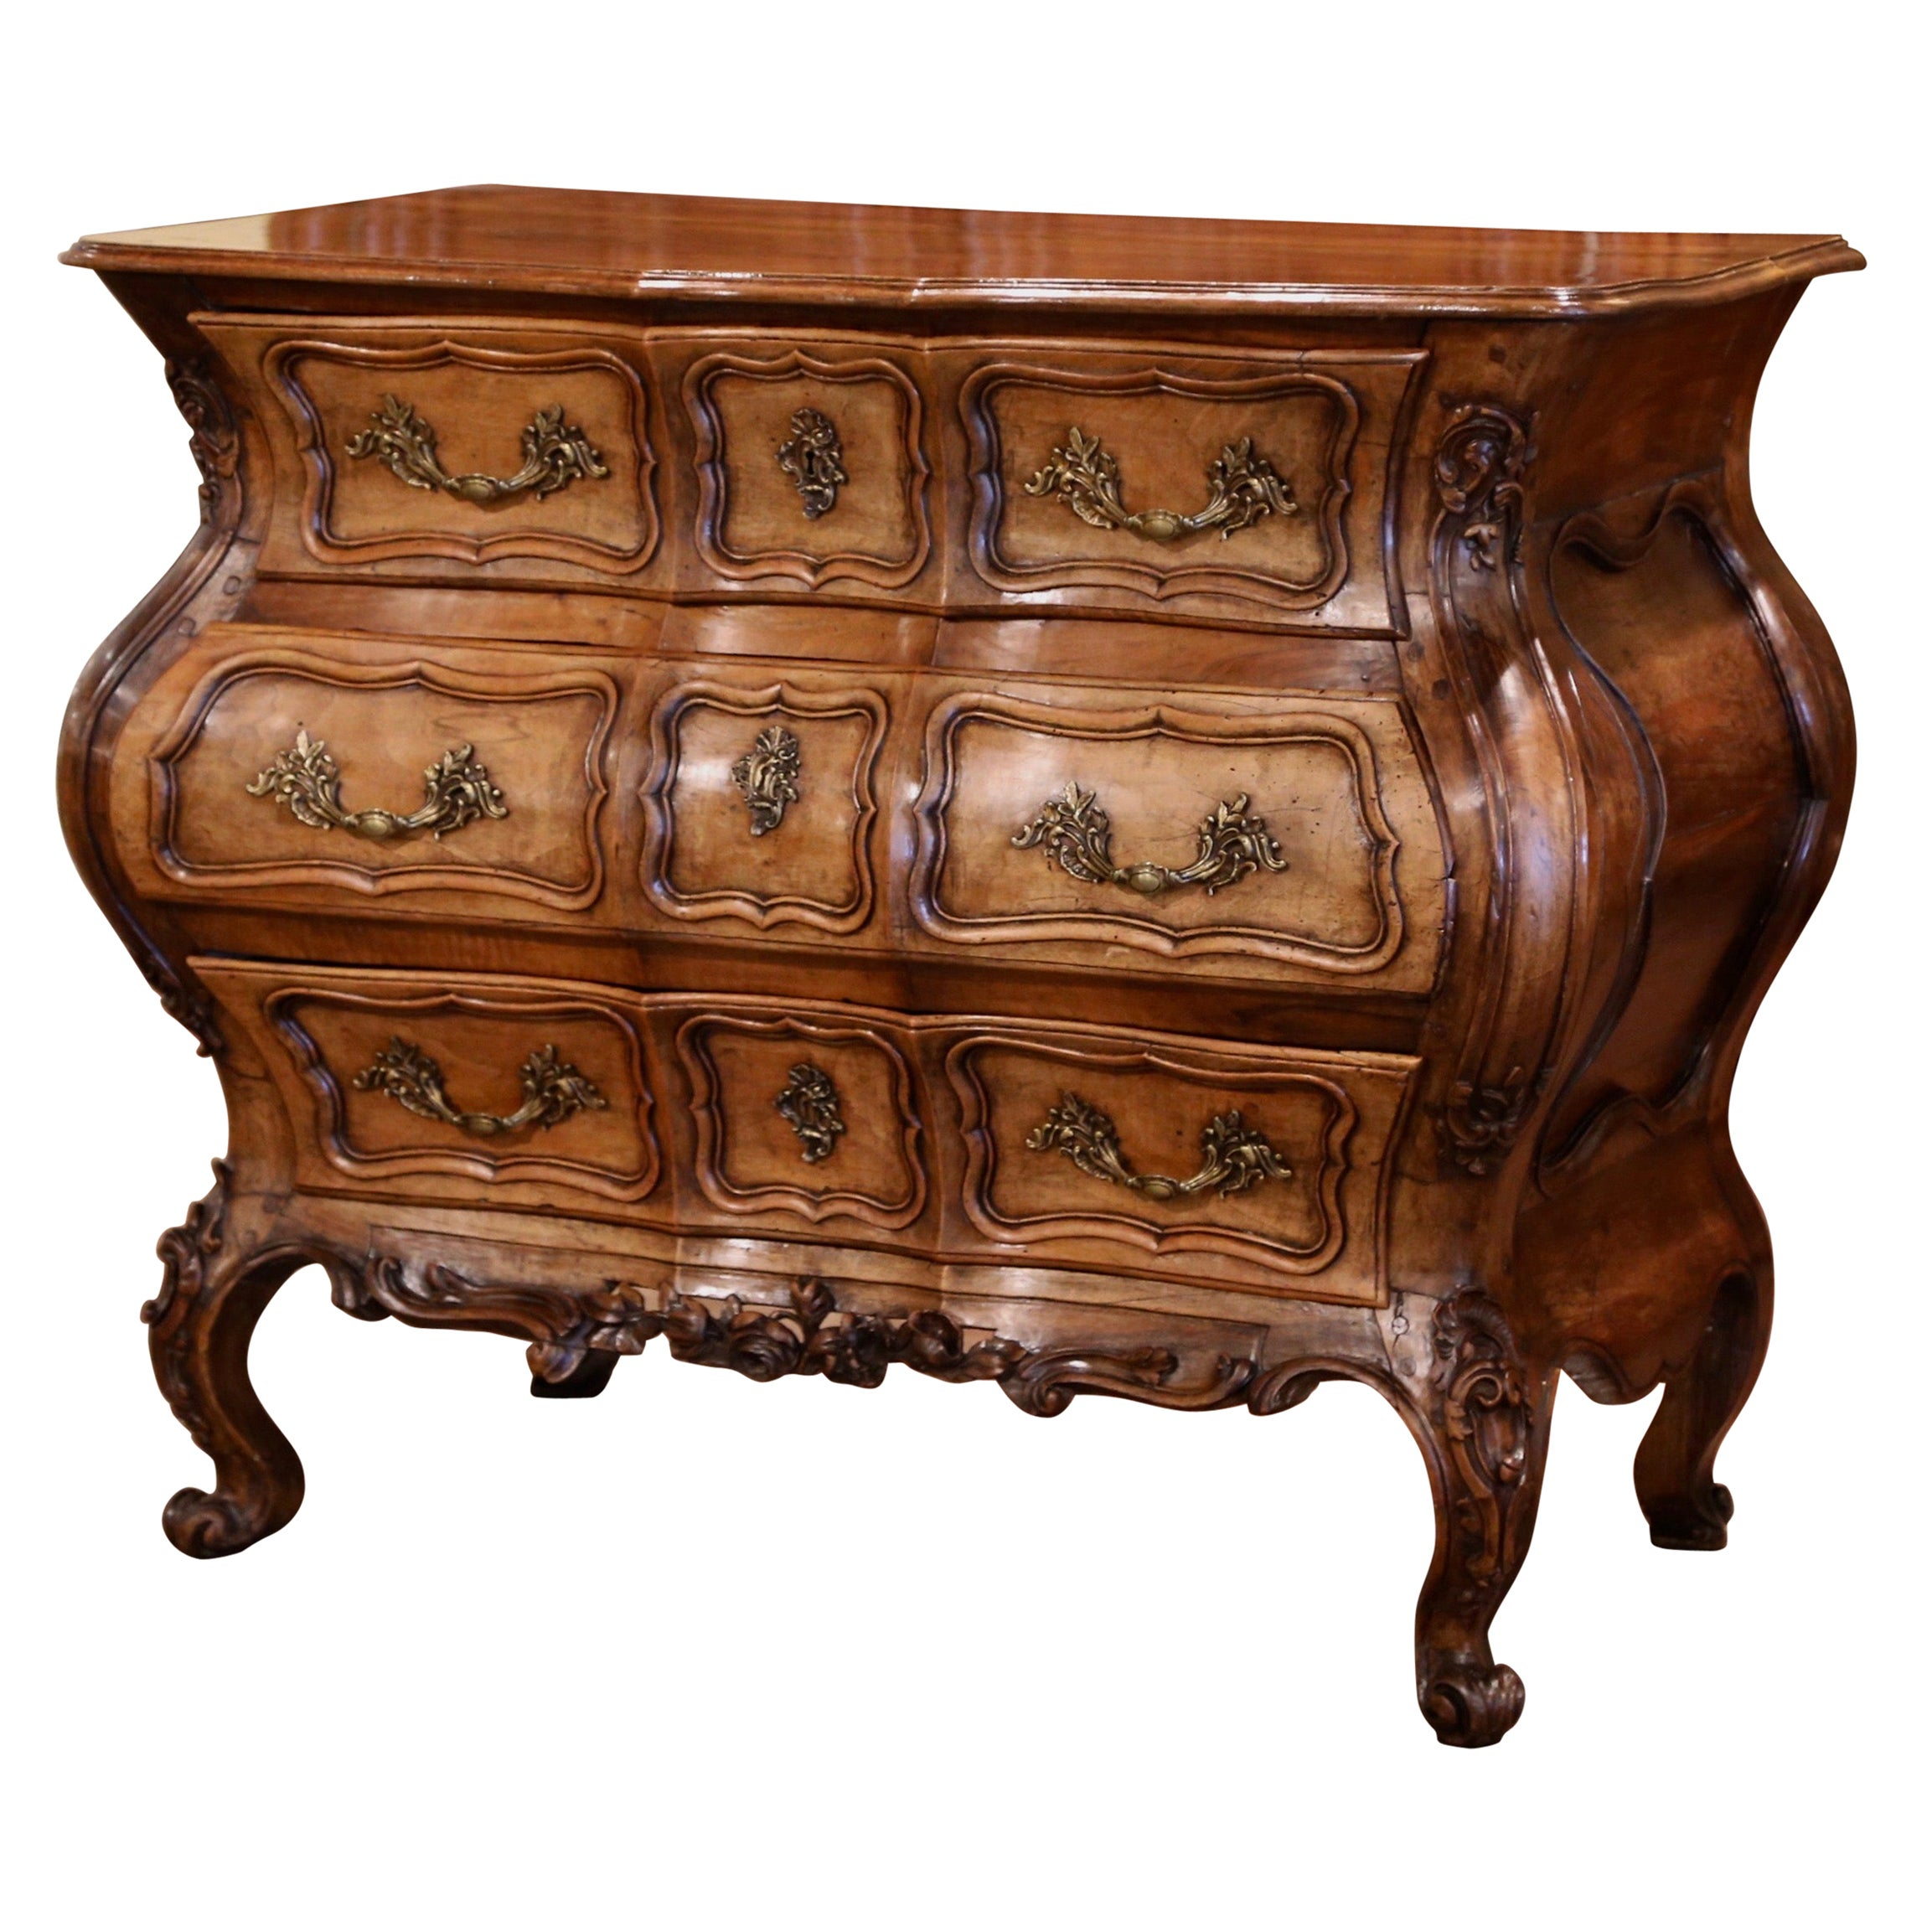 18th Century Louis XV Carved Walnut Serpentine Three-Drawer Commode Chest